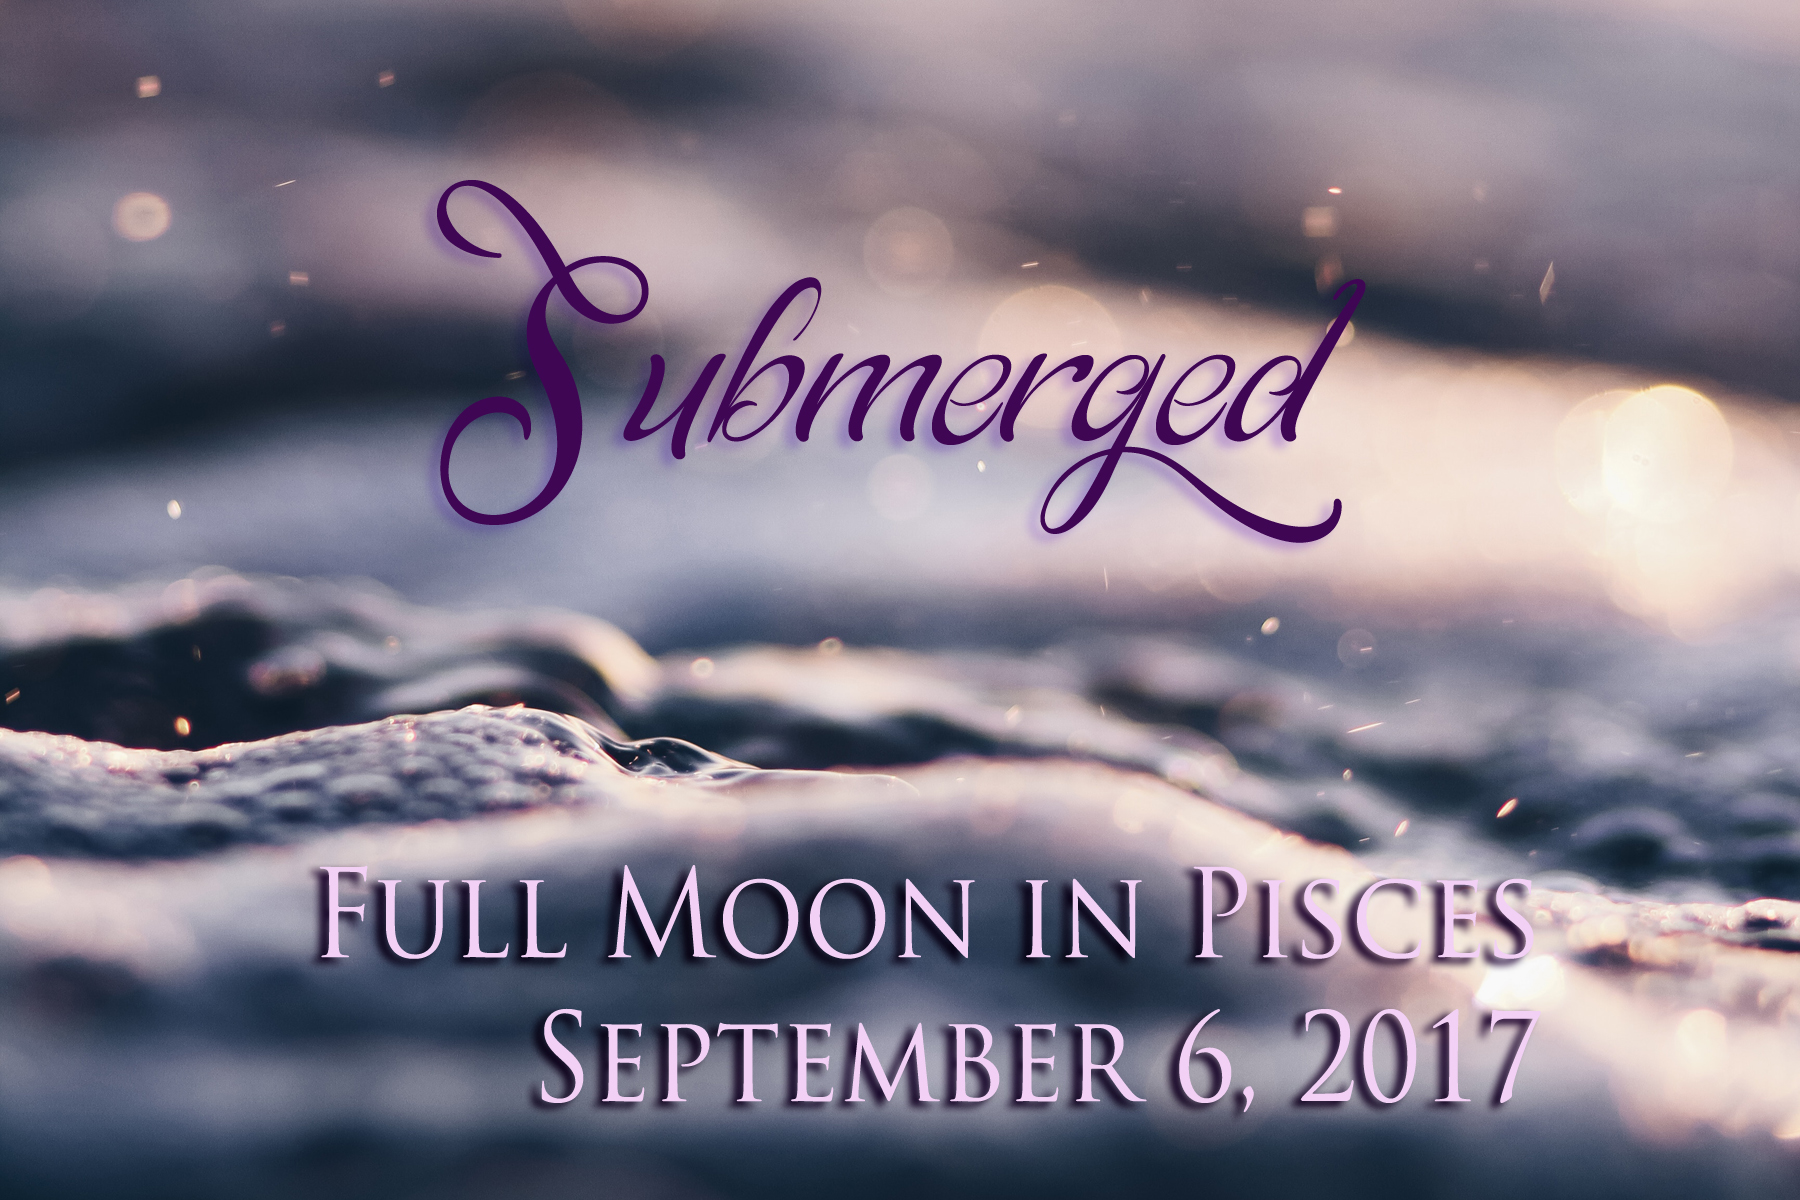 Full Moon in Pisces: Submerged